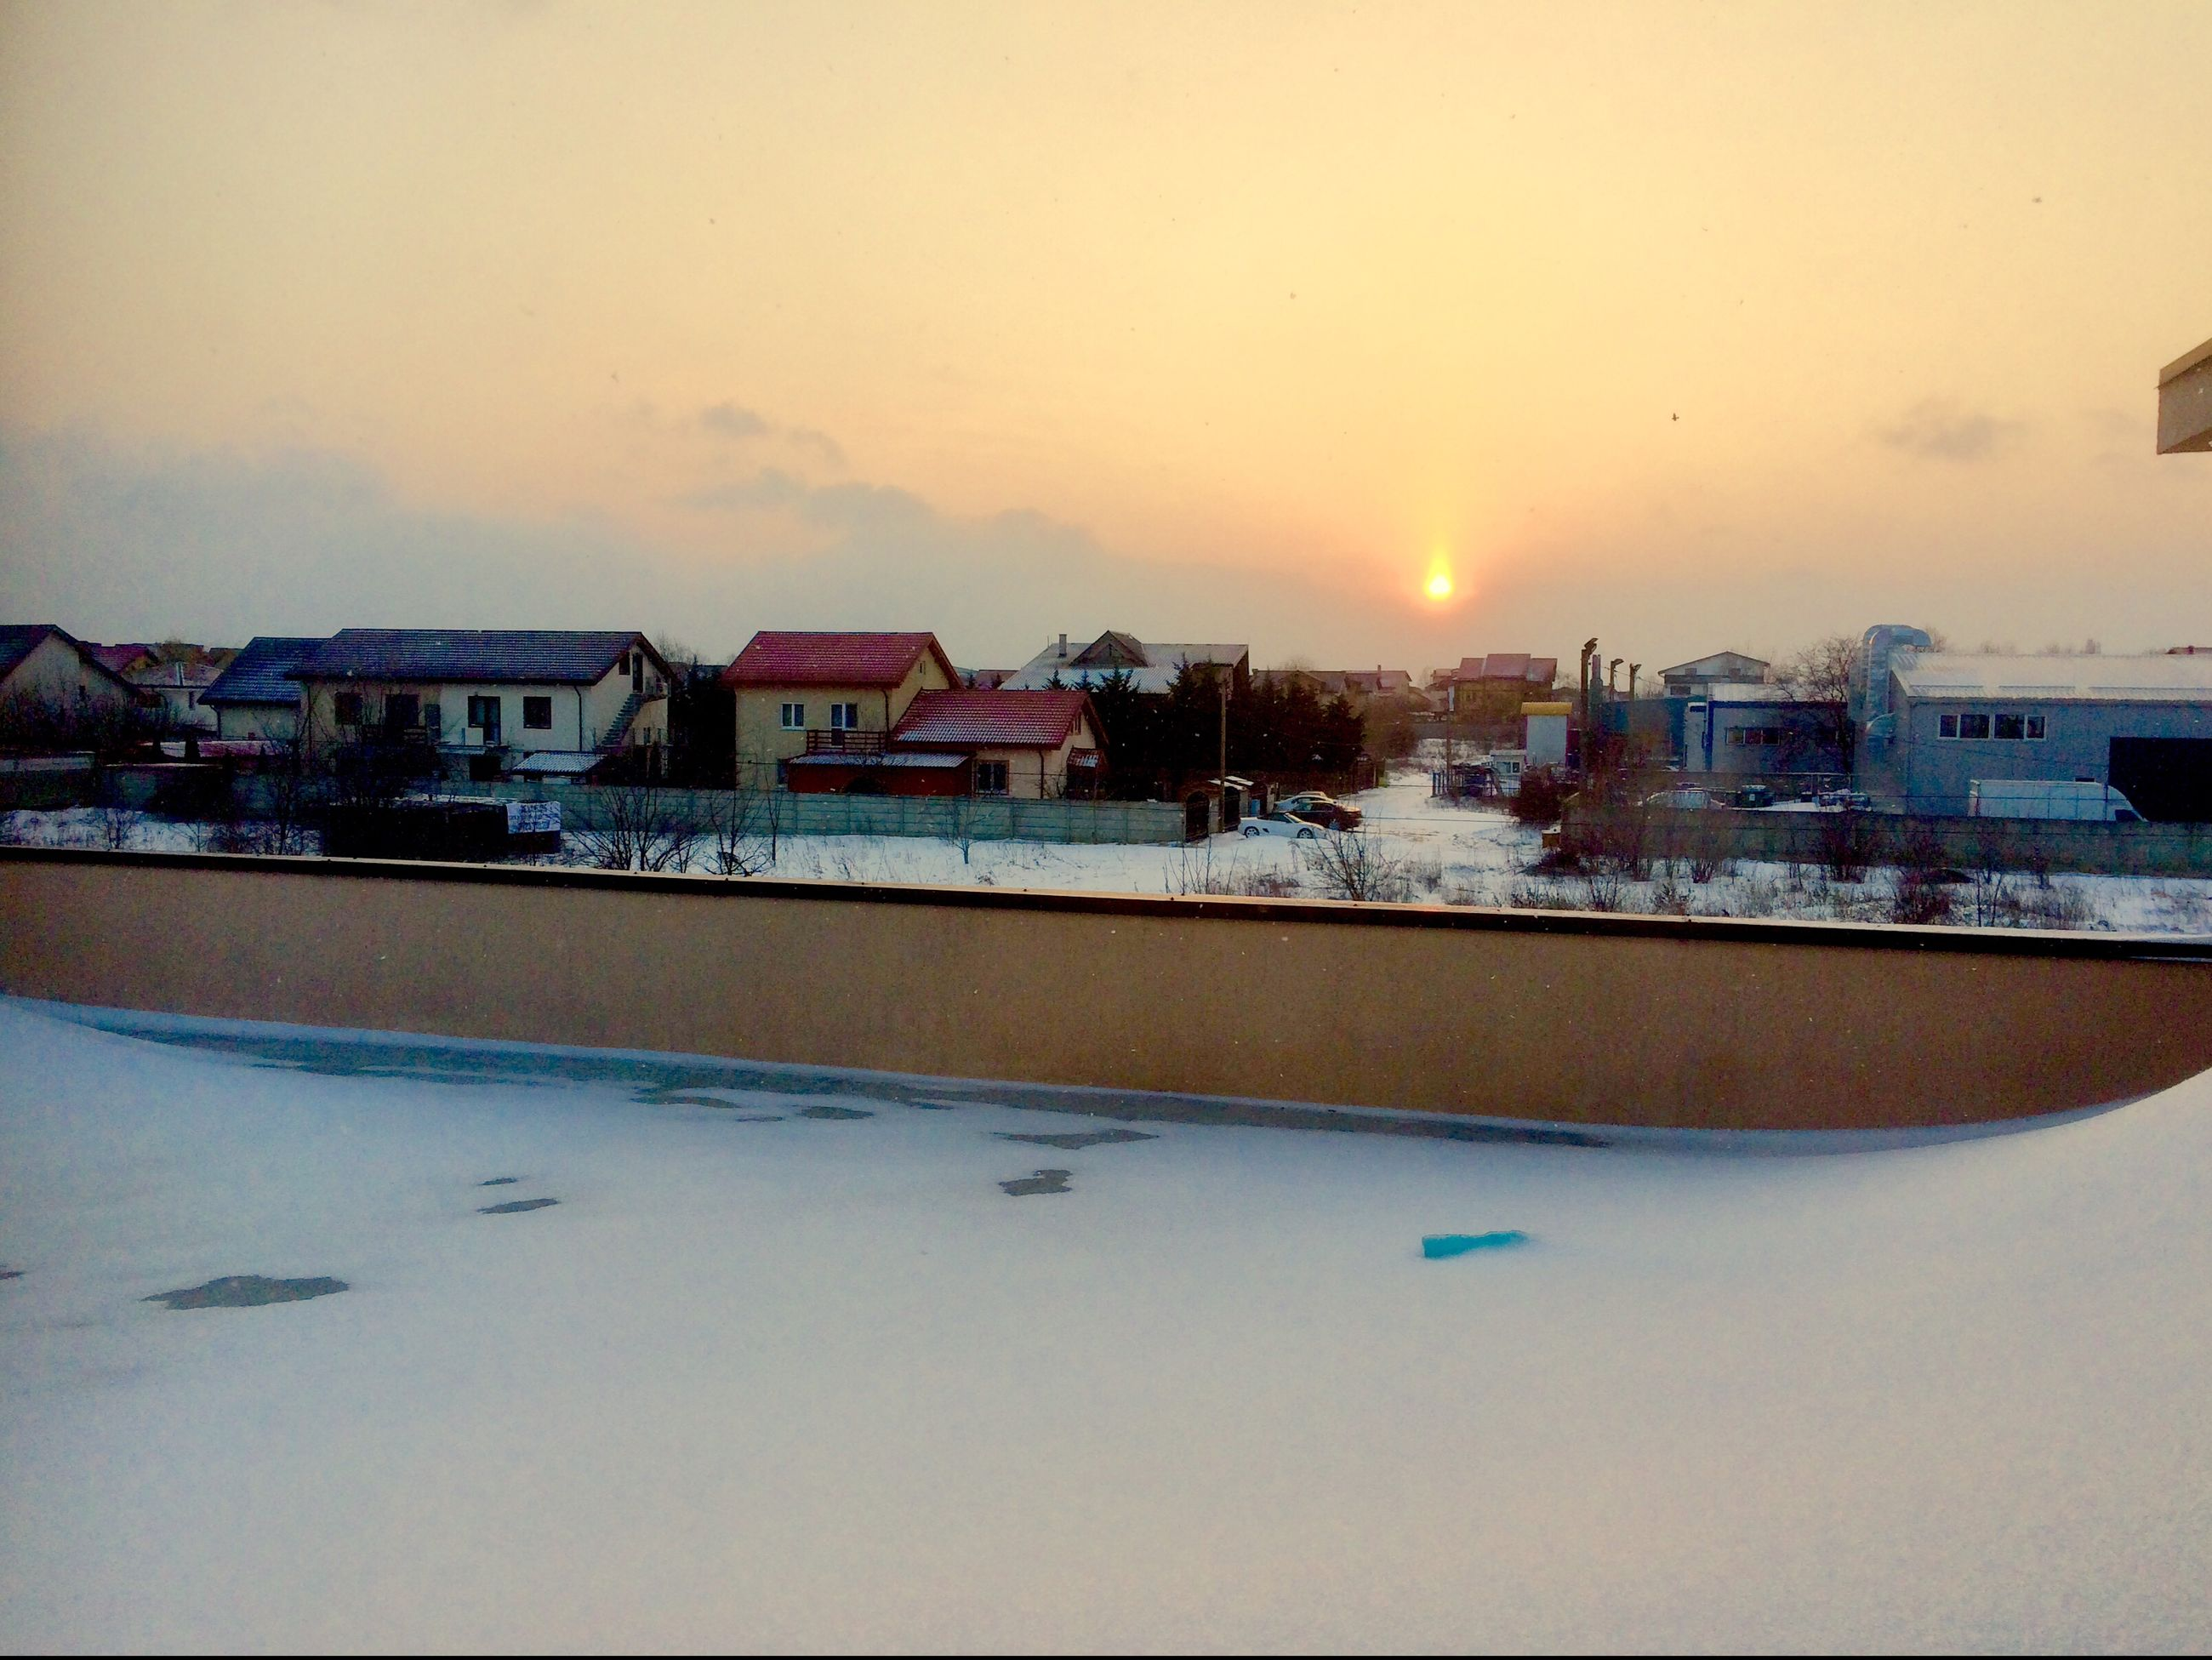 building exterior, built structure, house, architecture, sunset, sky, residential building, winter, snow, outdoors, no people, cold temperature, town, roof, city, nature, clear sky, day